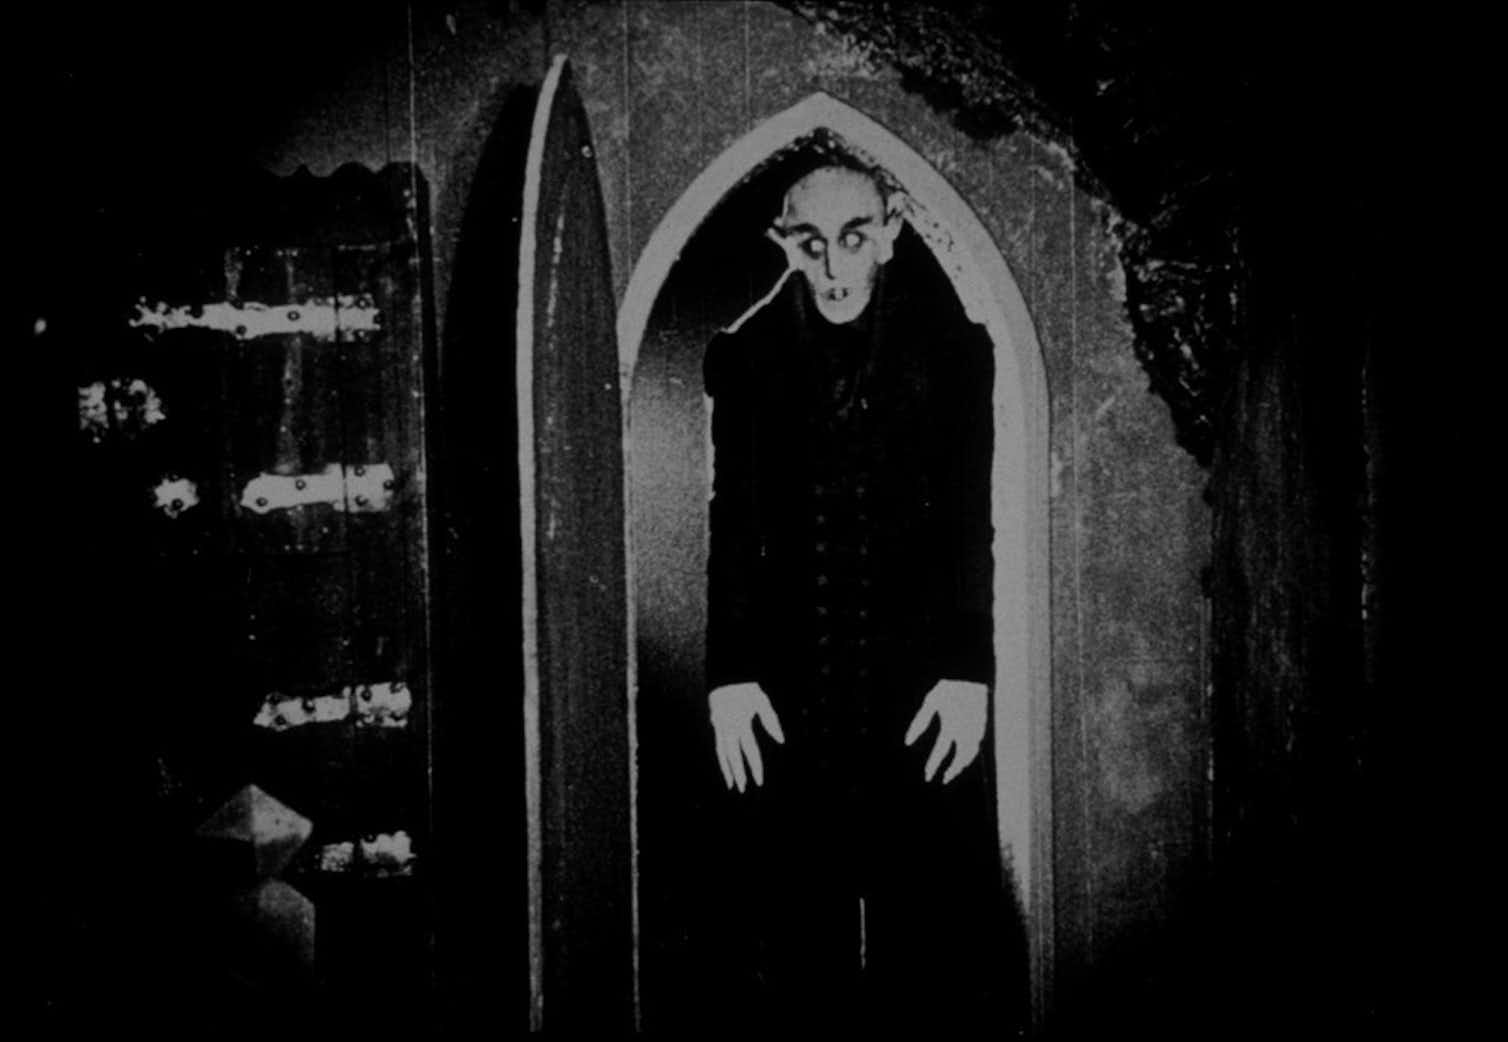 A scene from the 1922 silent horror classic, 'Nosferatu,' influenced by Bram Stoker's 'Dracula.'